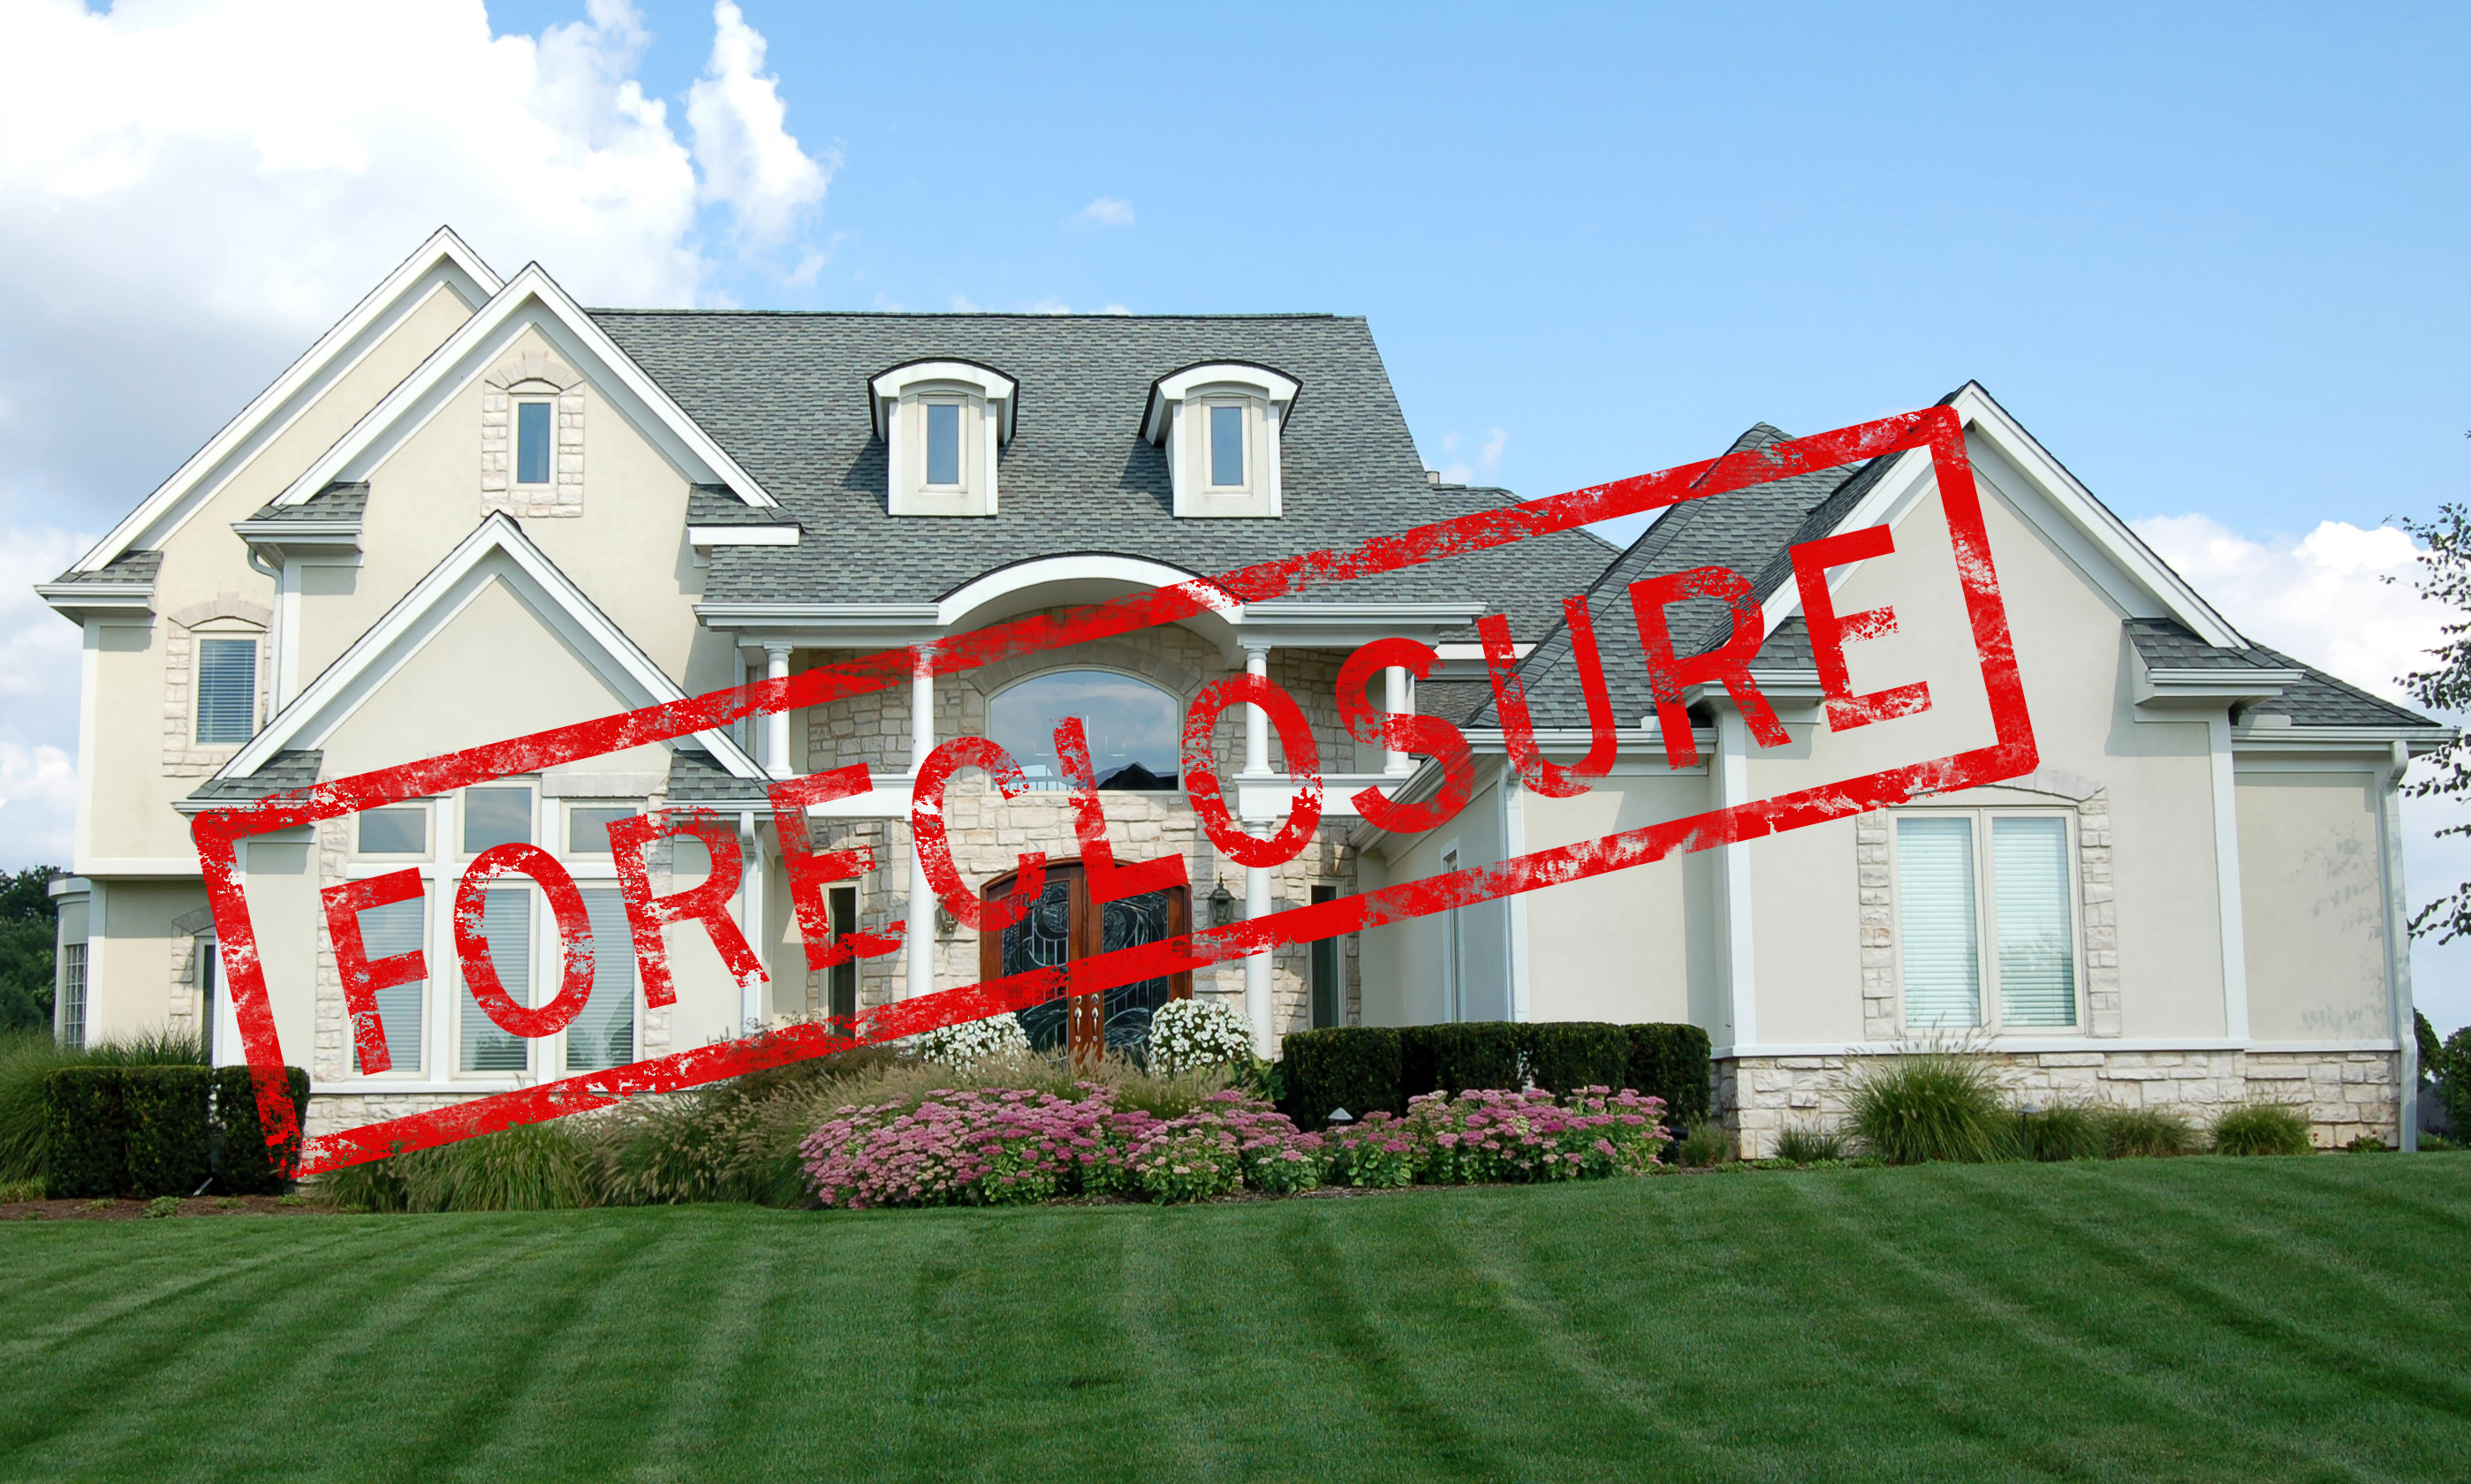 Call Appraise Colorado Inc to order valuations regarding Douglas foreclosures